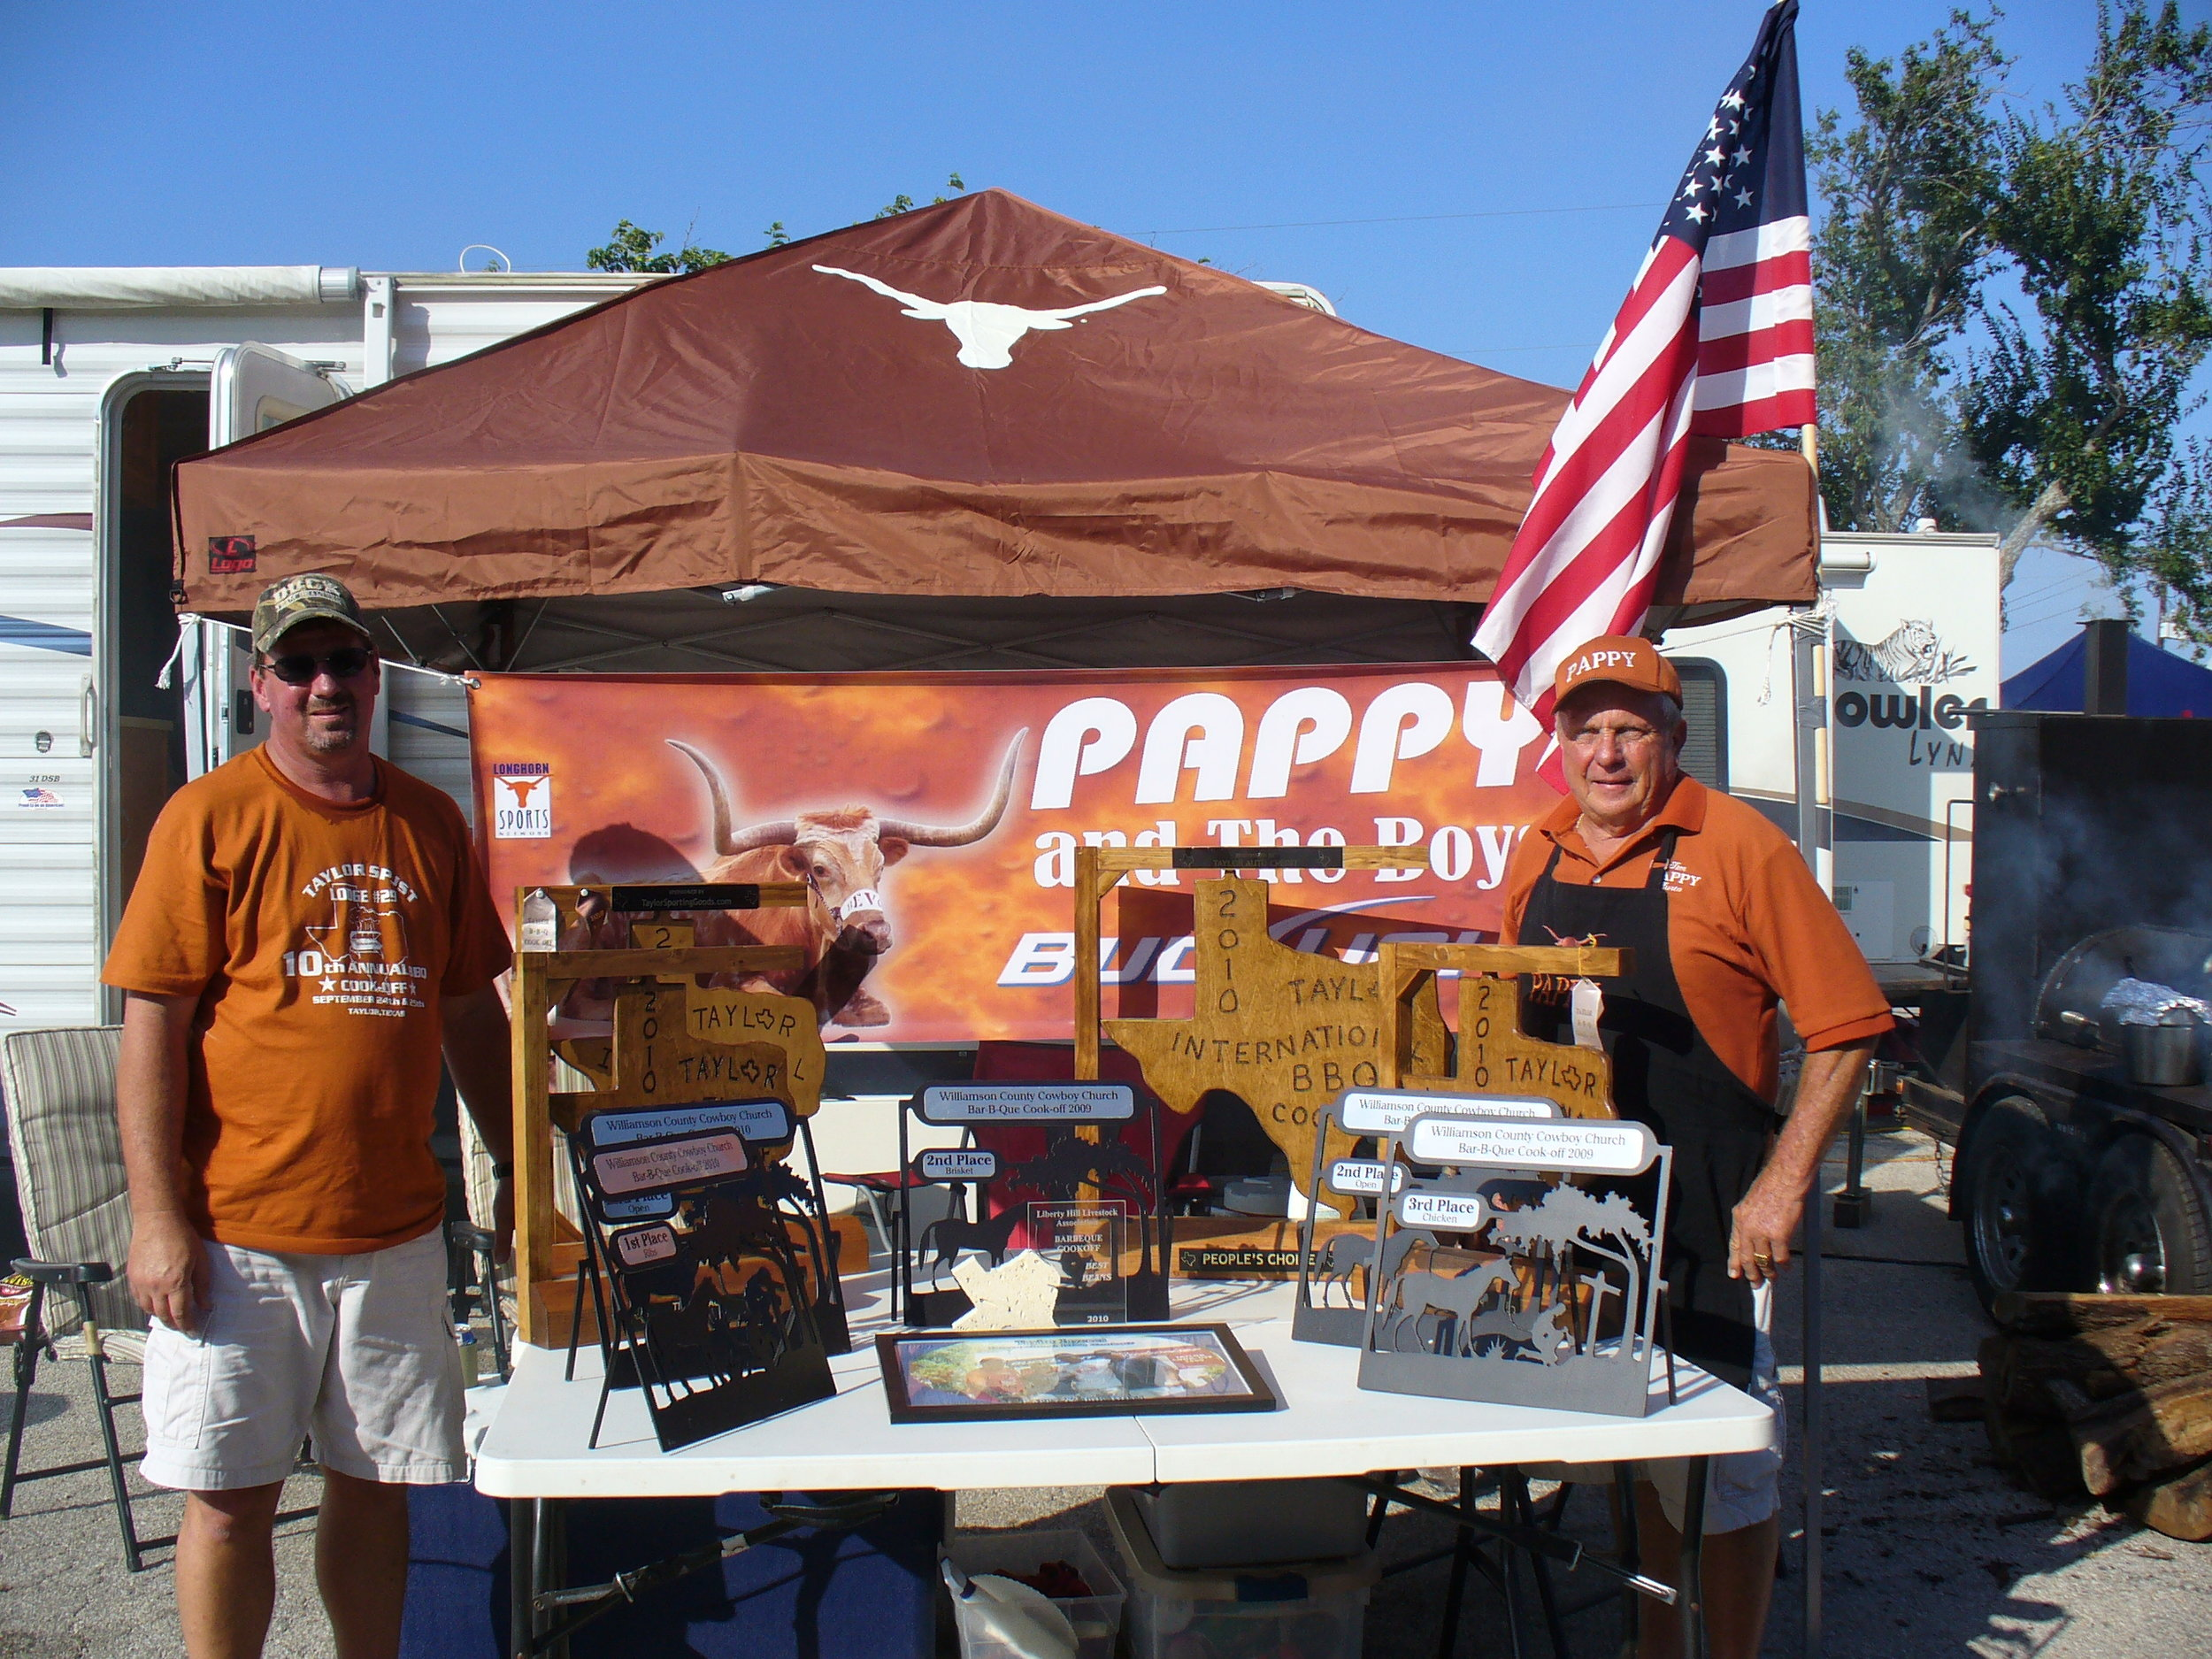 Robin's dad aka Pappy (right) with some of his many BBQ competition trophies.